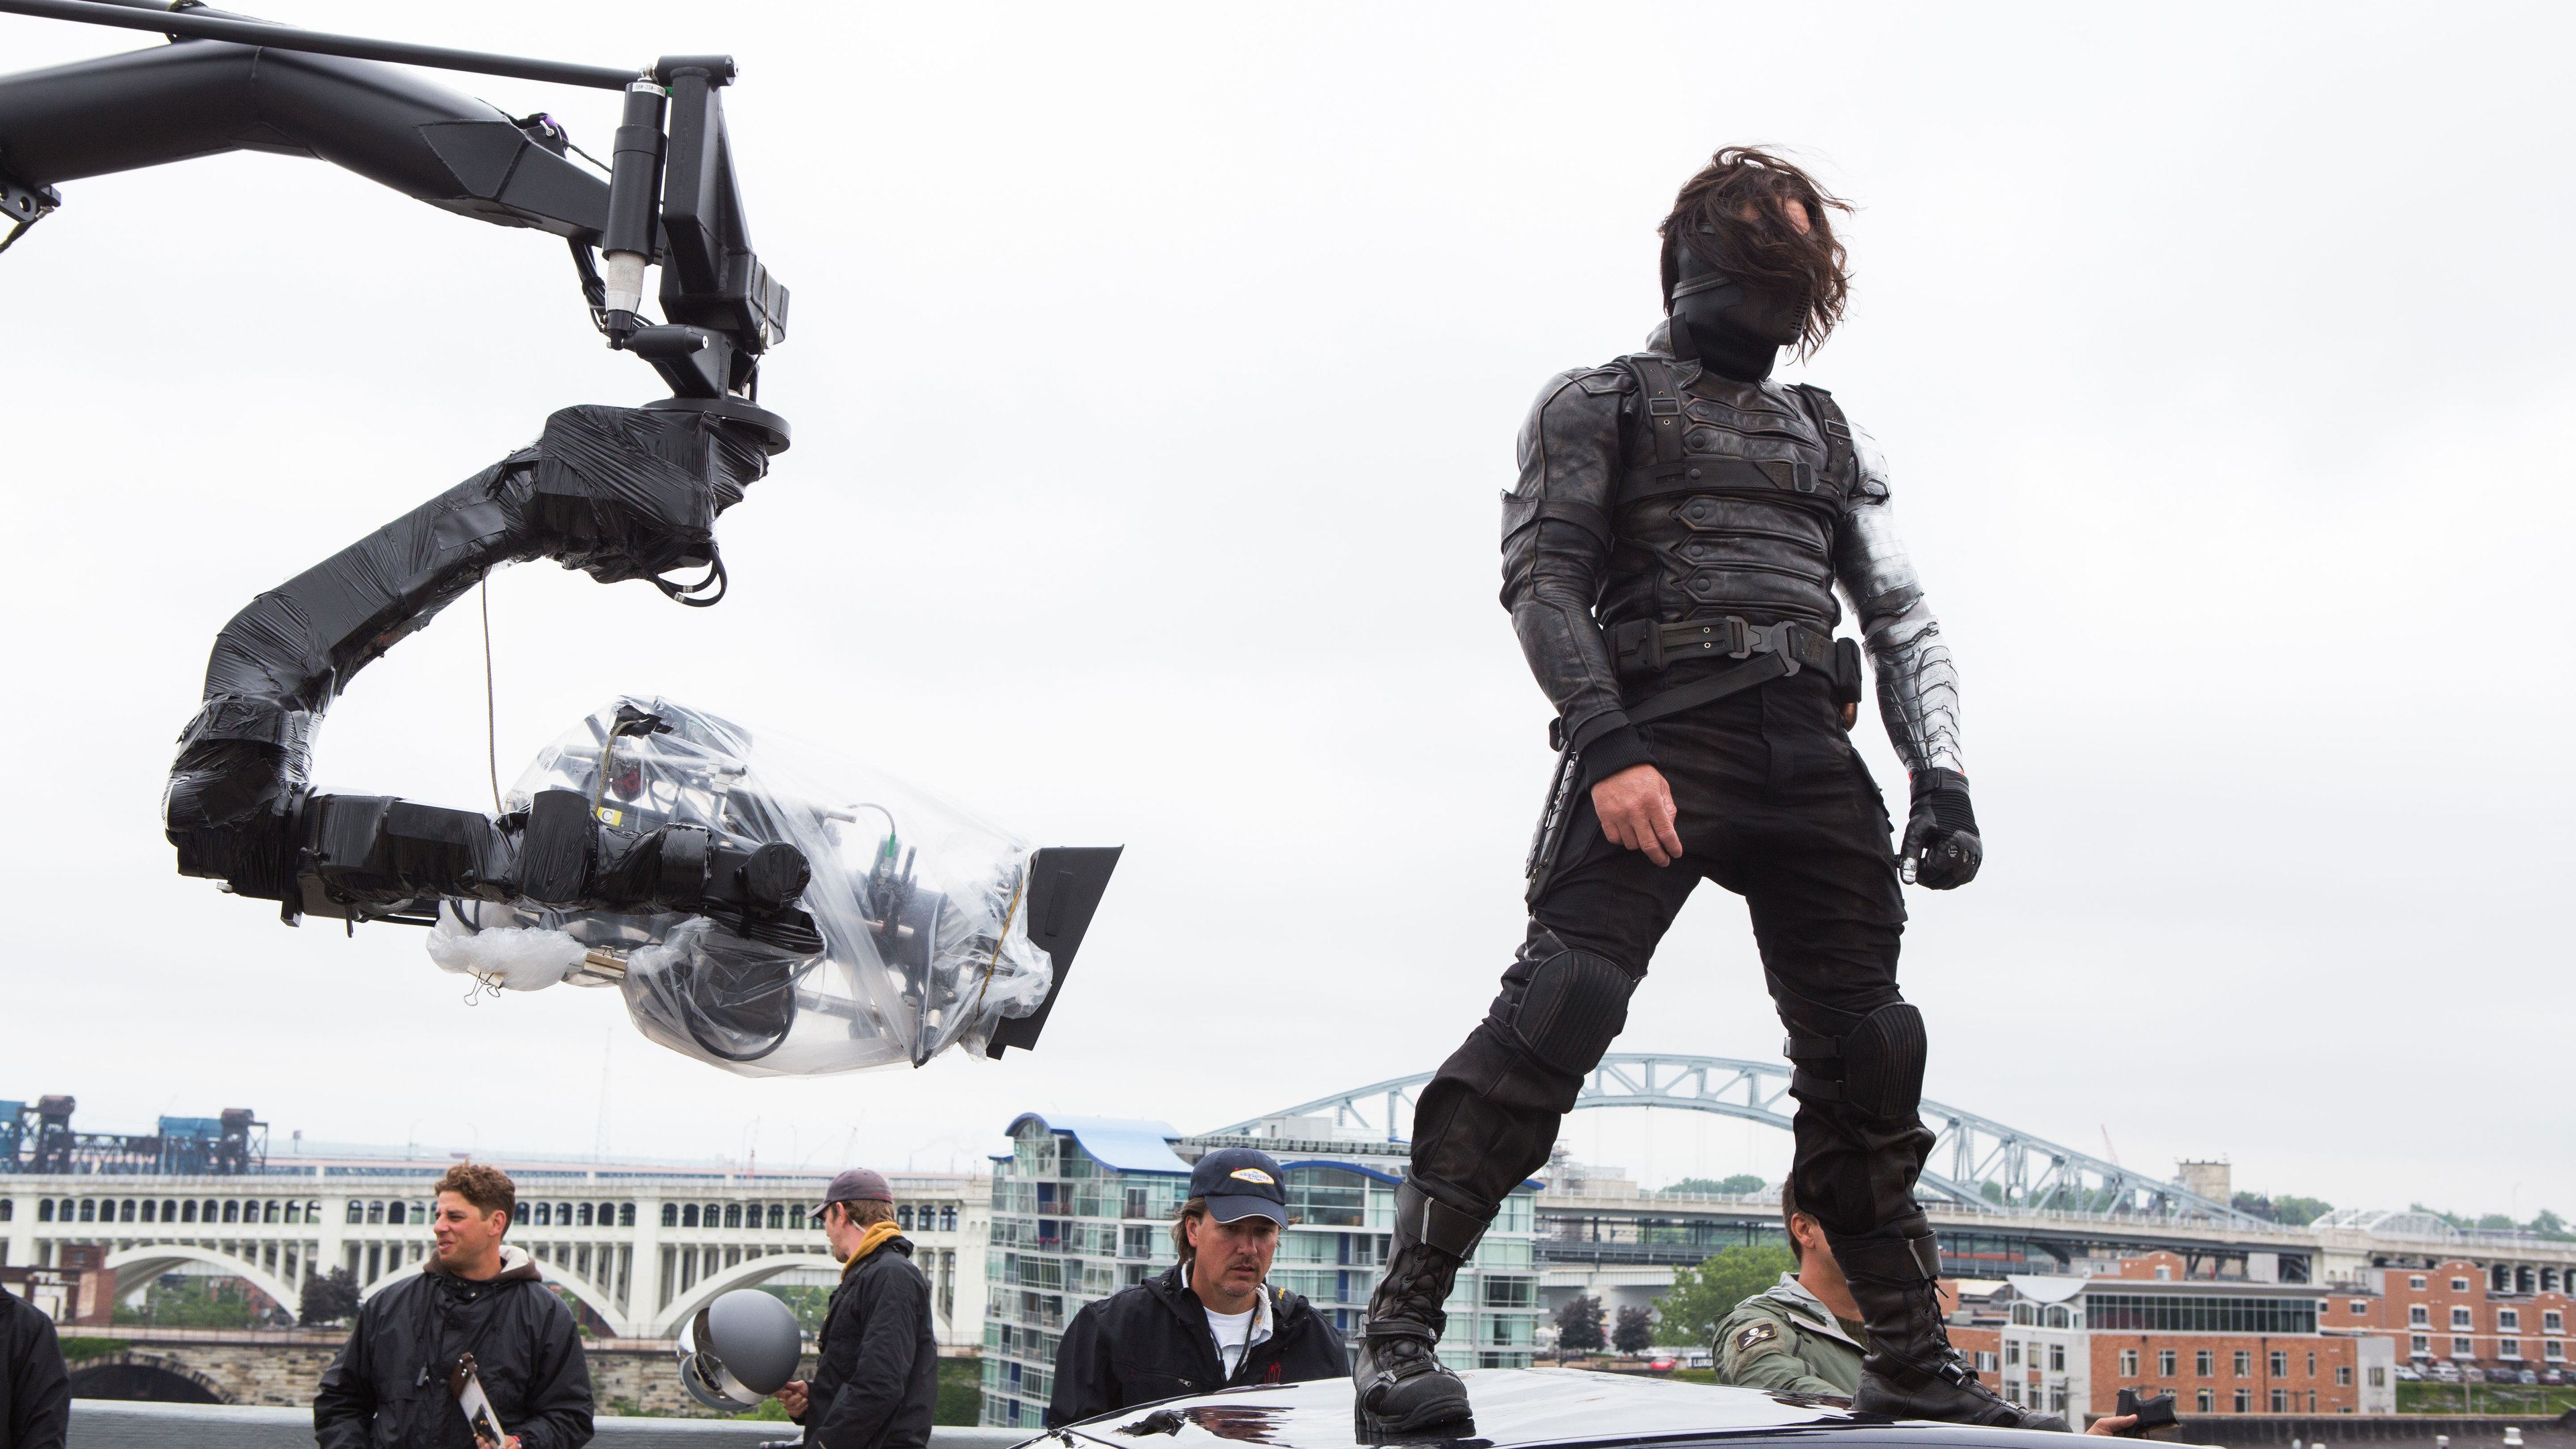 Actor Sebastian Stan (Bucky Barnes/Winter Soldier) behind-the-scenes on top of a car in Captain America: The Winter Soldier.